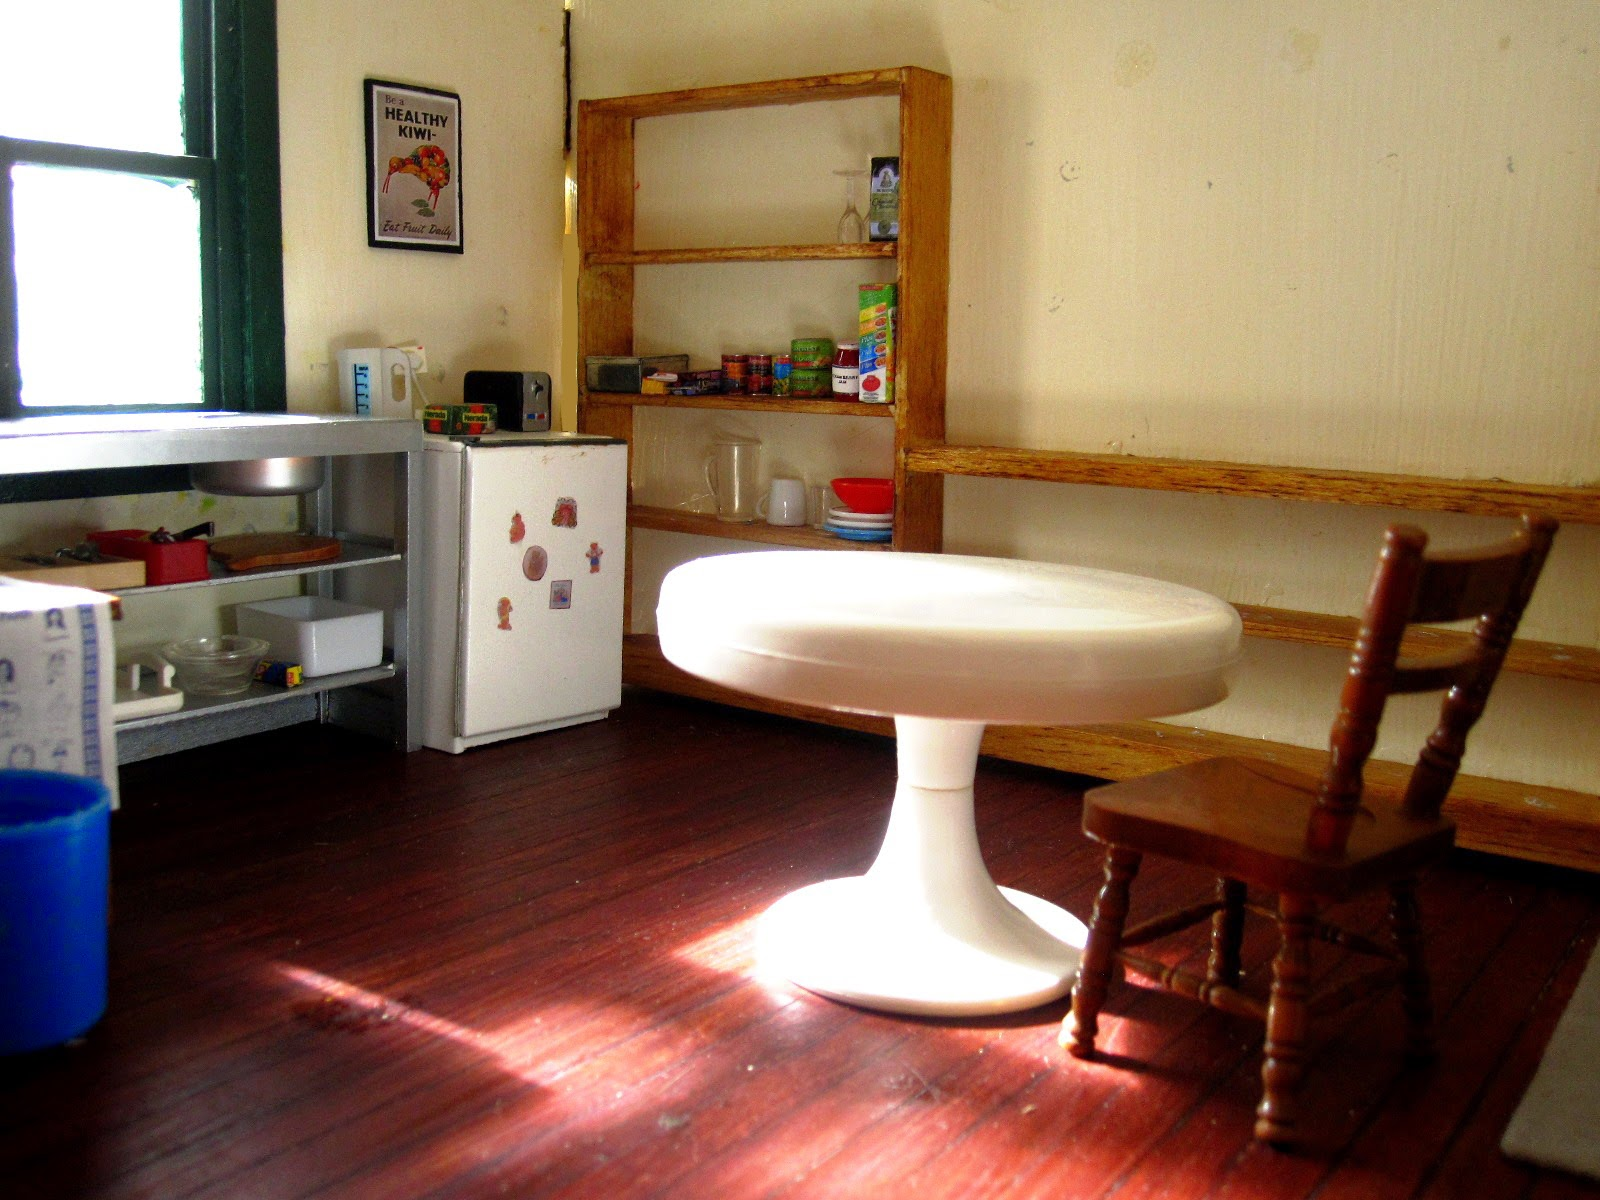 Interior of a modern miniature holiday house kitchen, with a round white table in the foreground.